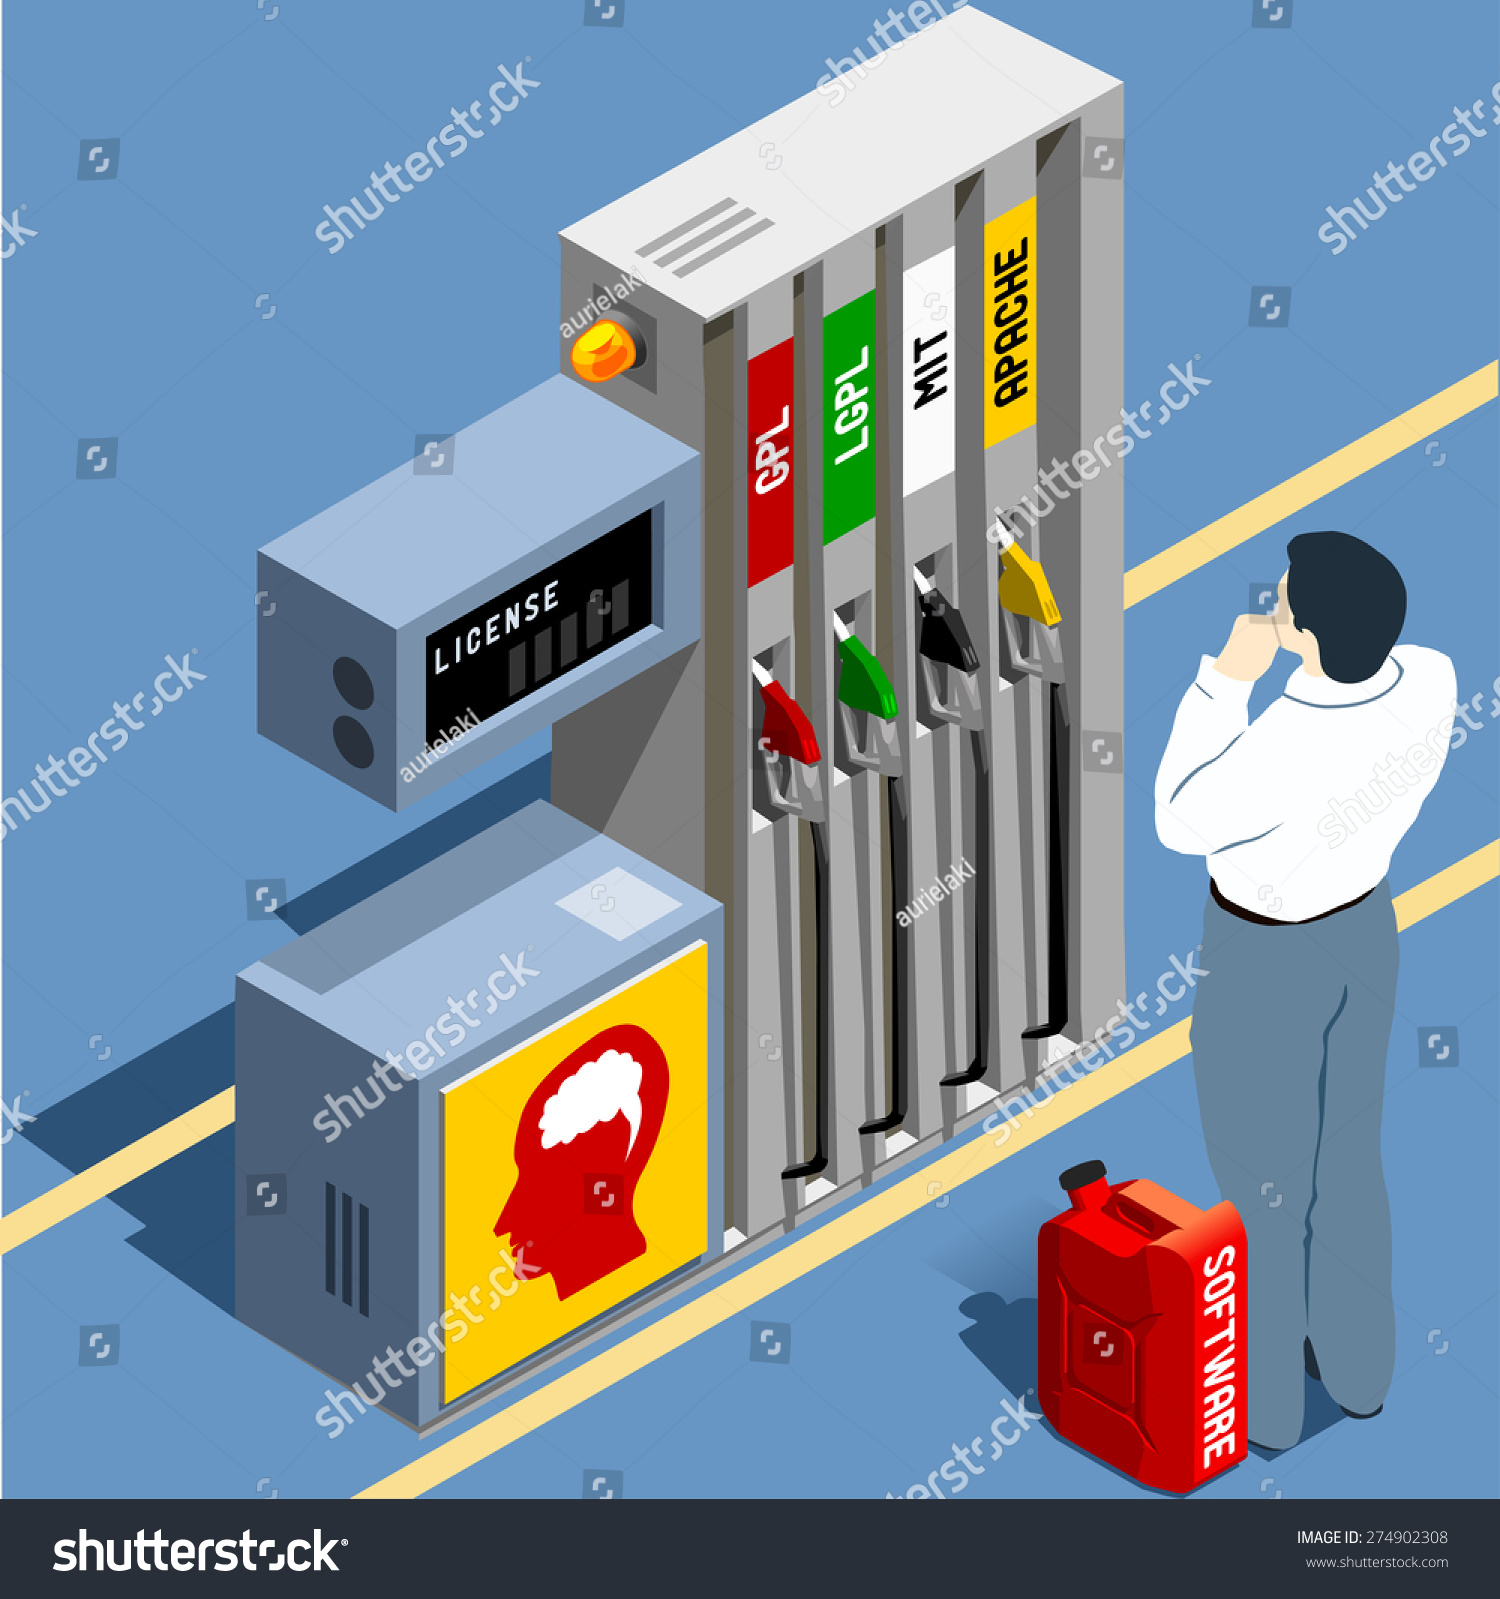 Software Licenses Gpl Lgpl Flat 3 D Stock Vector Royalty Free The Encyclopedia Electronic Circuit Design 3d Isometric Concept Wordplay Propane Fuel Lpg Become Of License